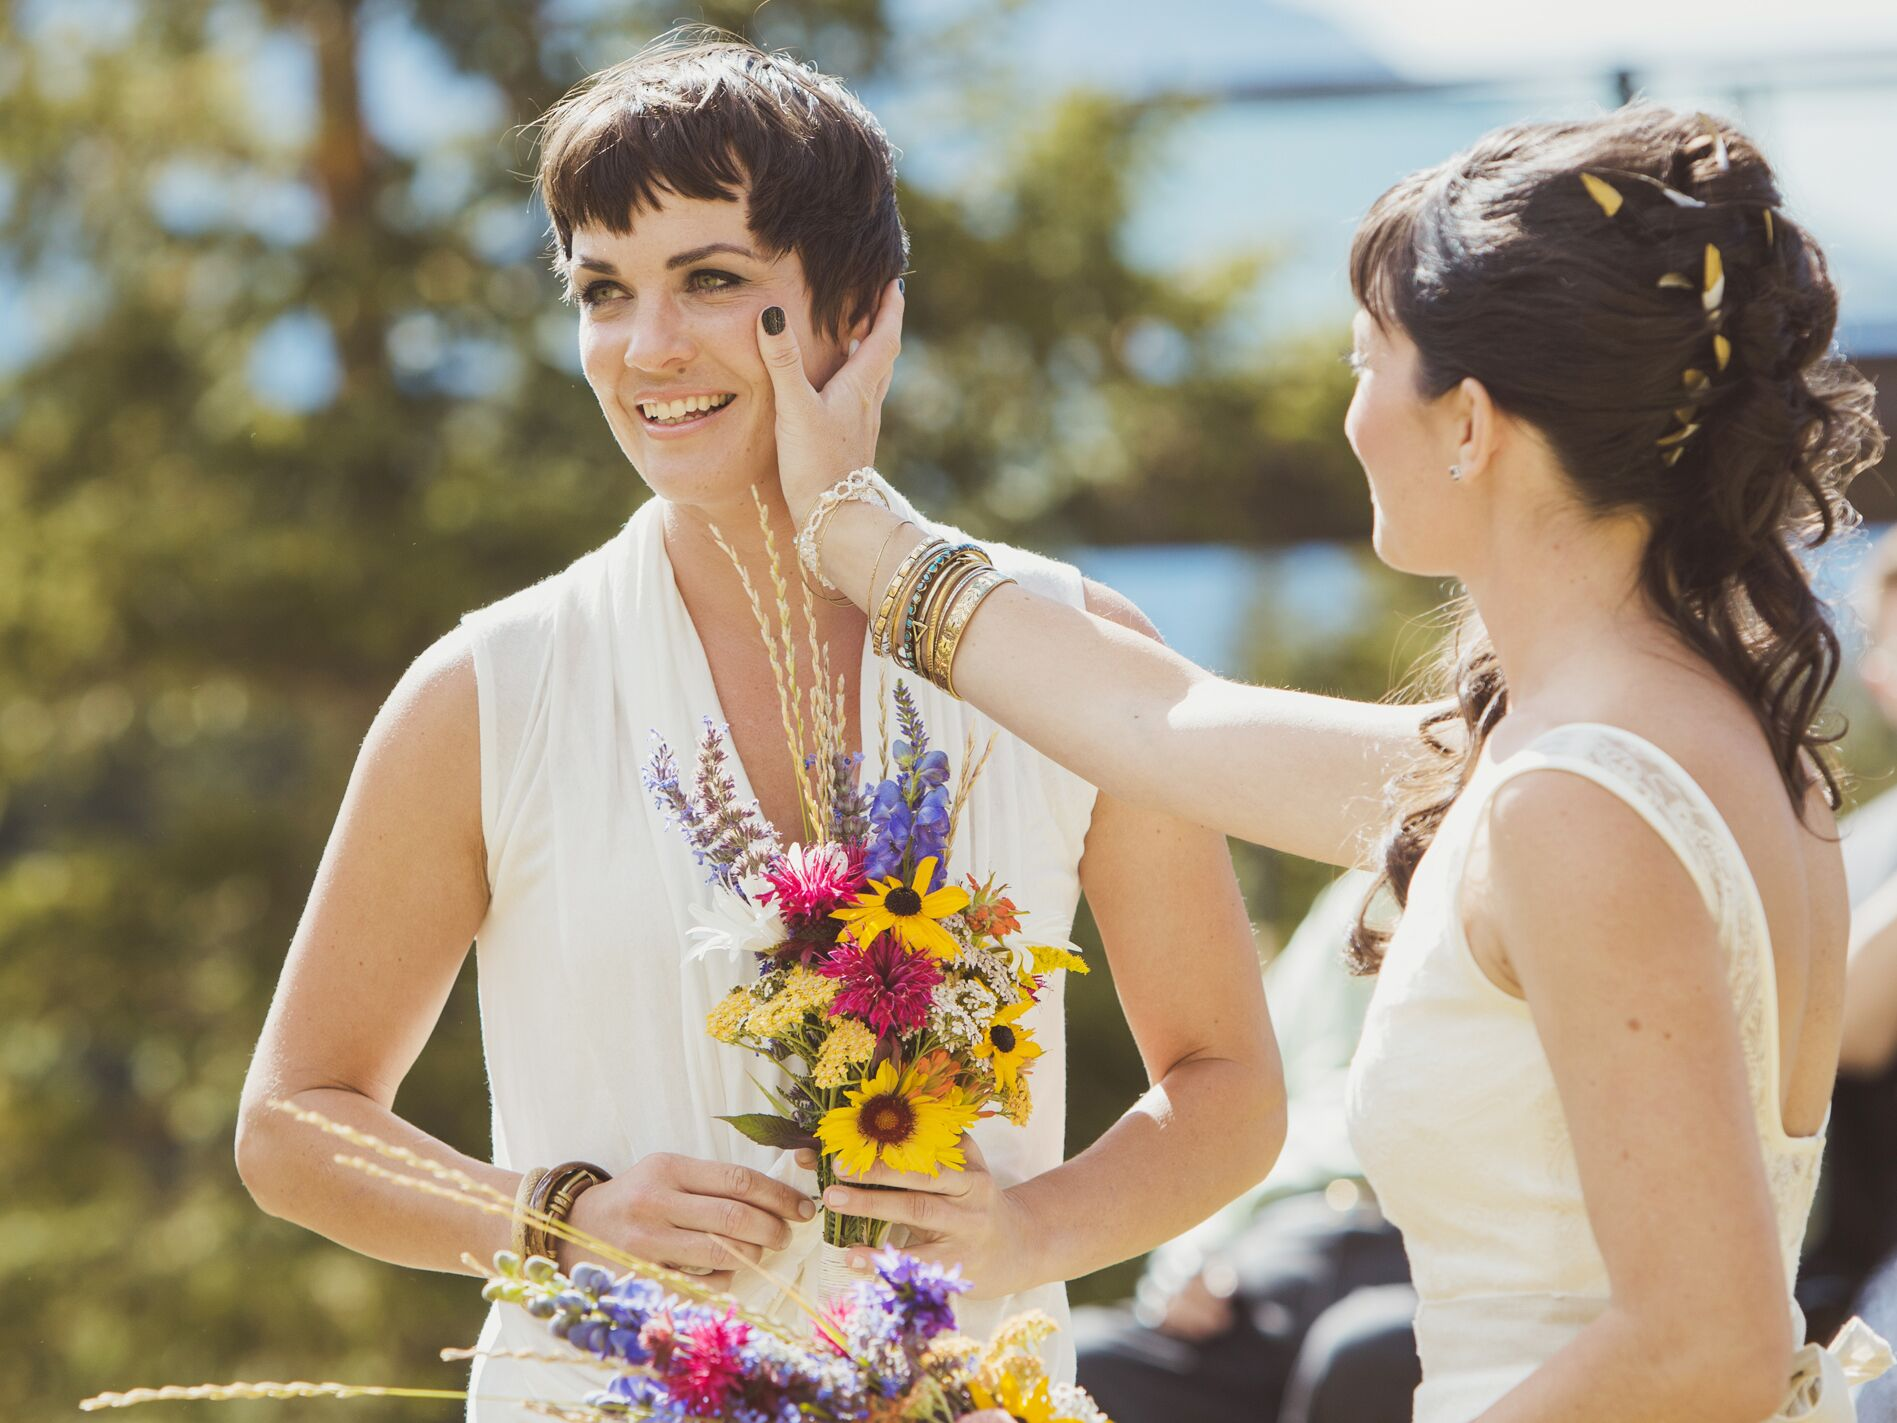 5 of Our Favorite Same-Sex Wedding Moments